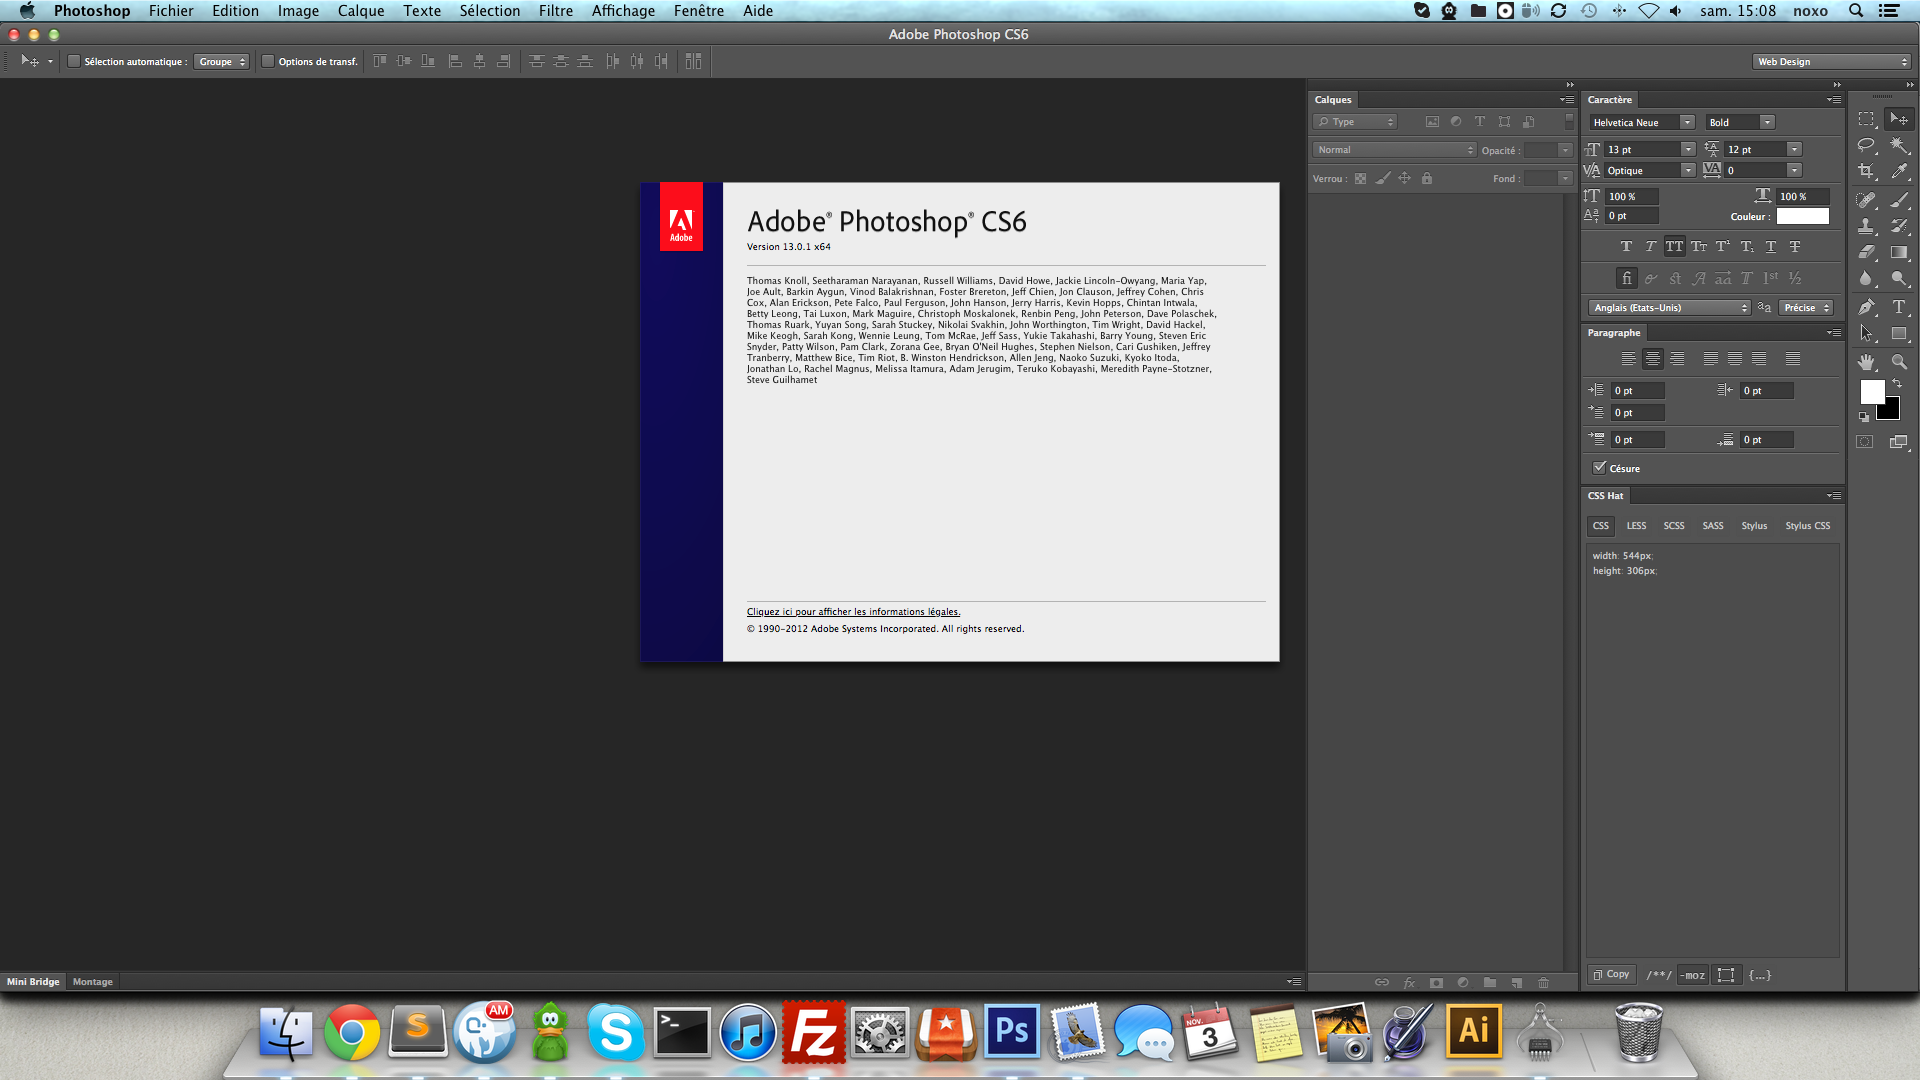 adobe photoshop cs6 patch painter